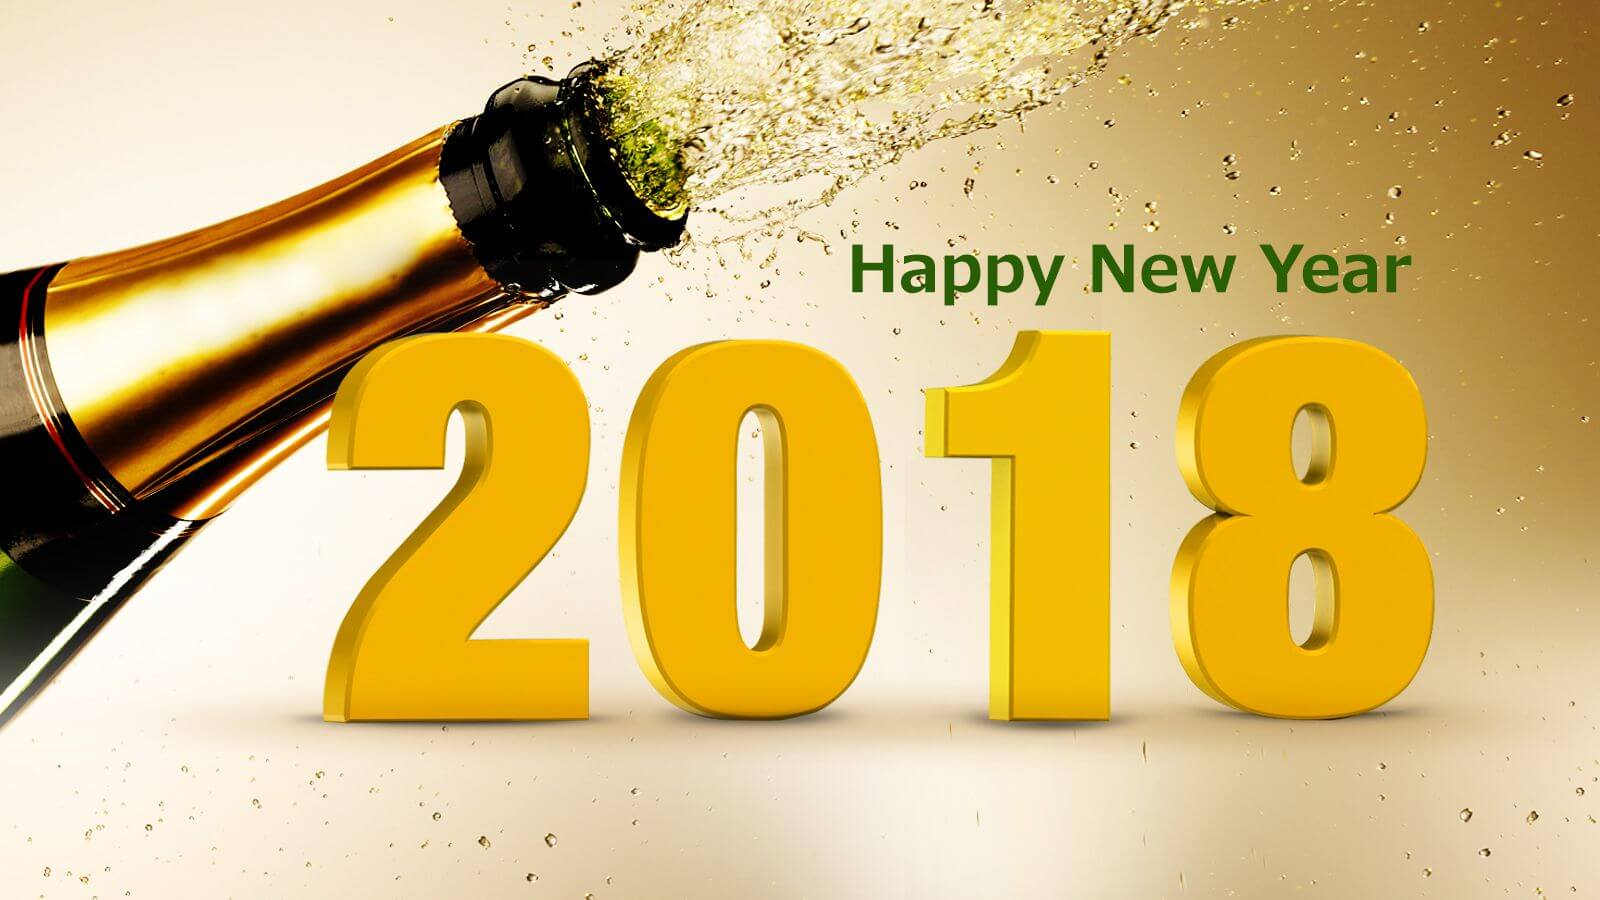 Happy New Year 2018 Messages for Facebook